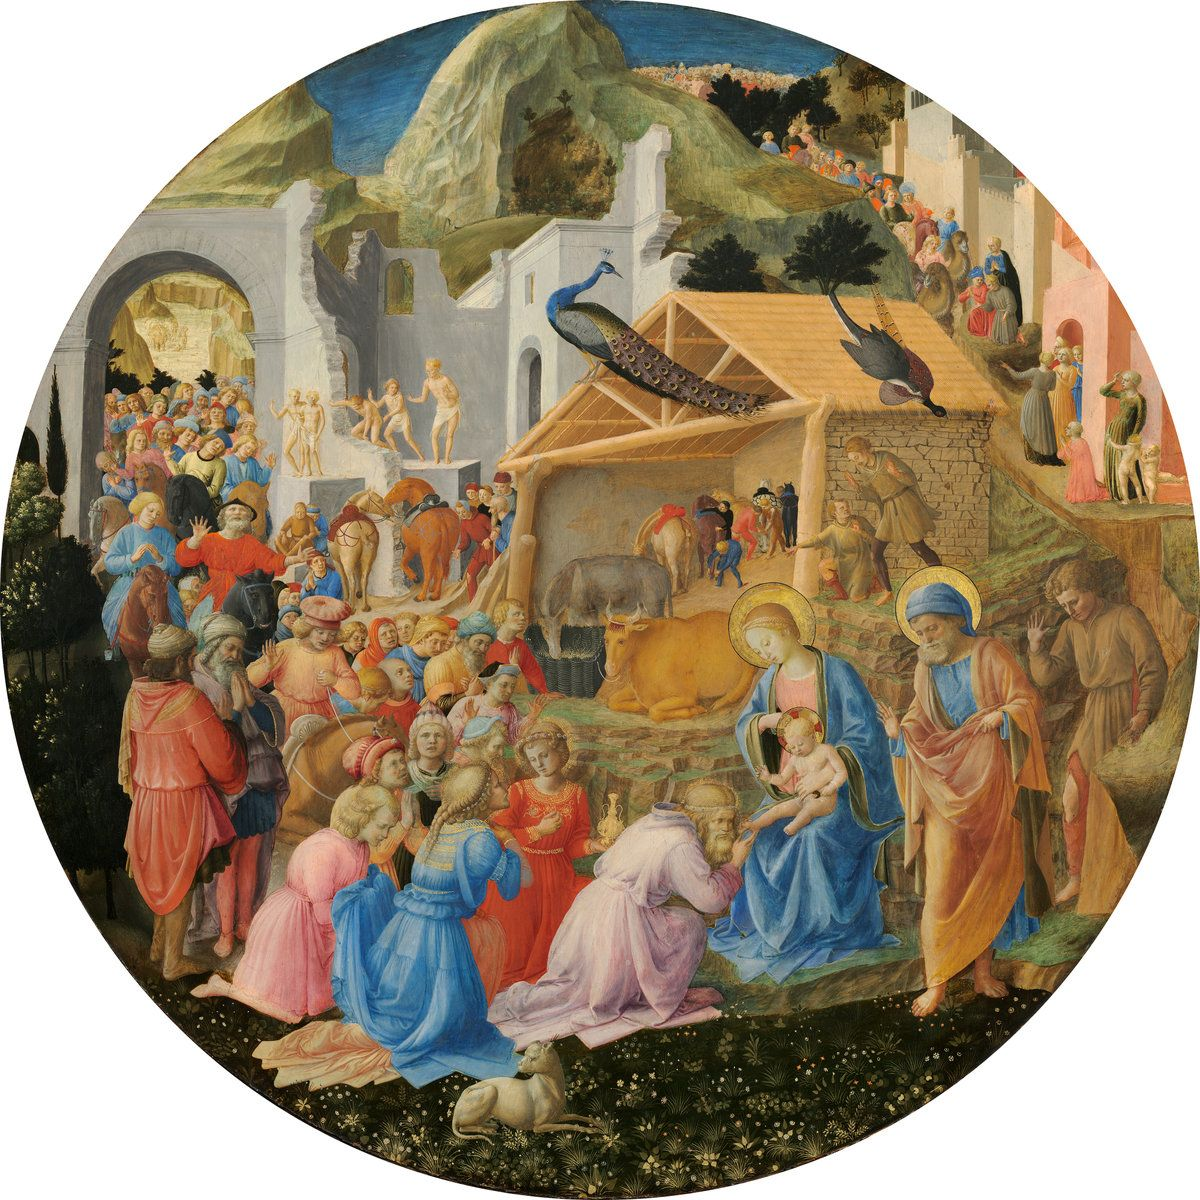 The Adoration of the Magi by Fra Angelico